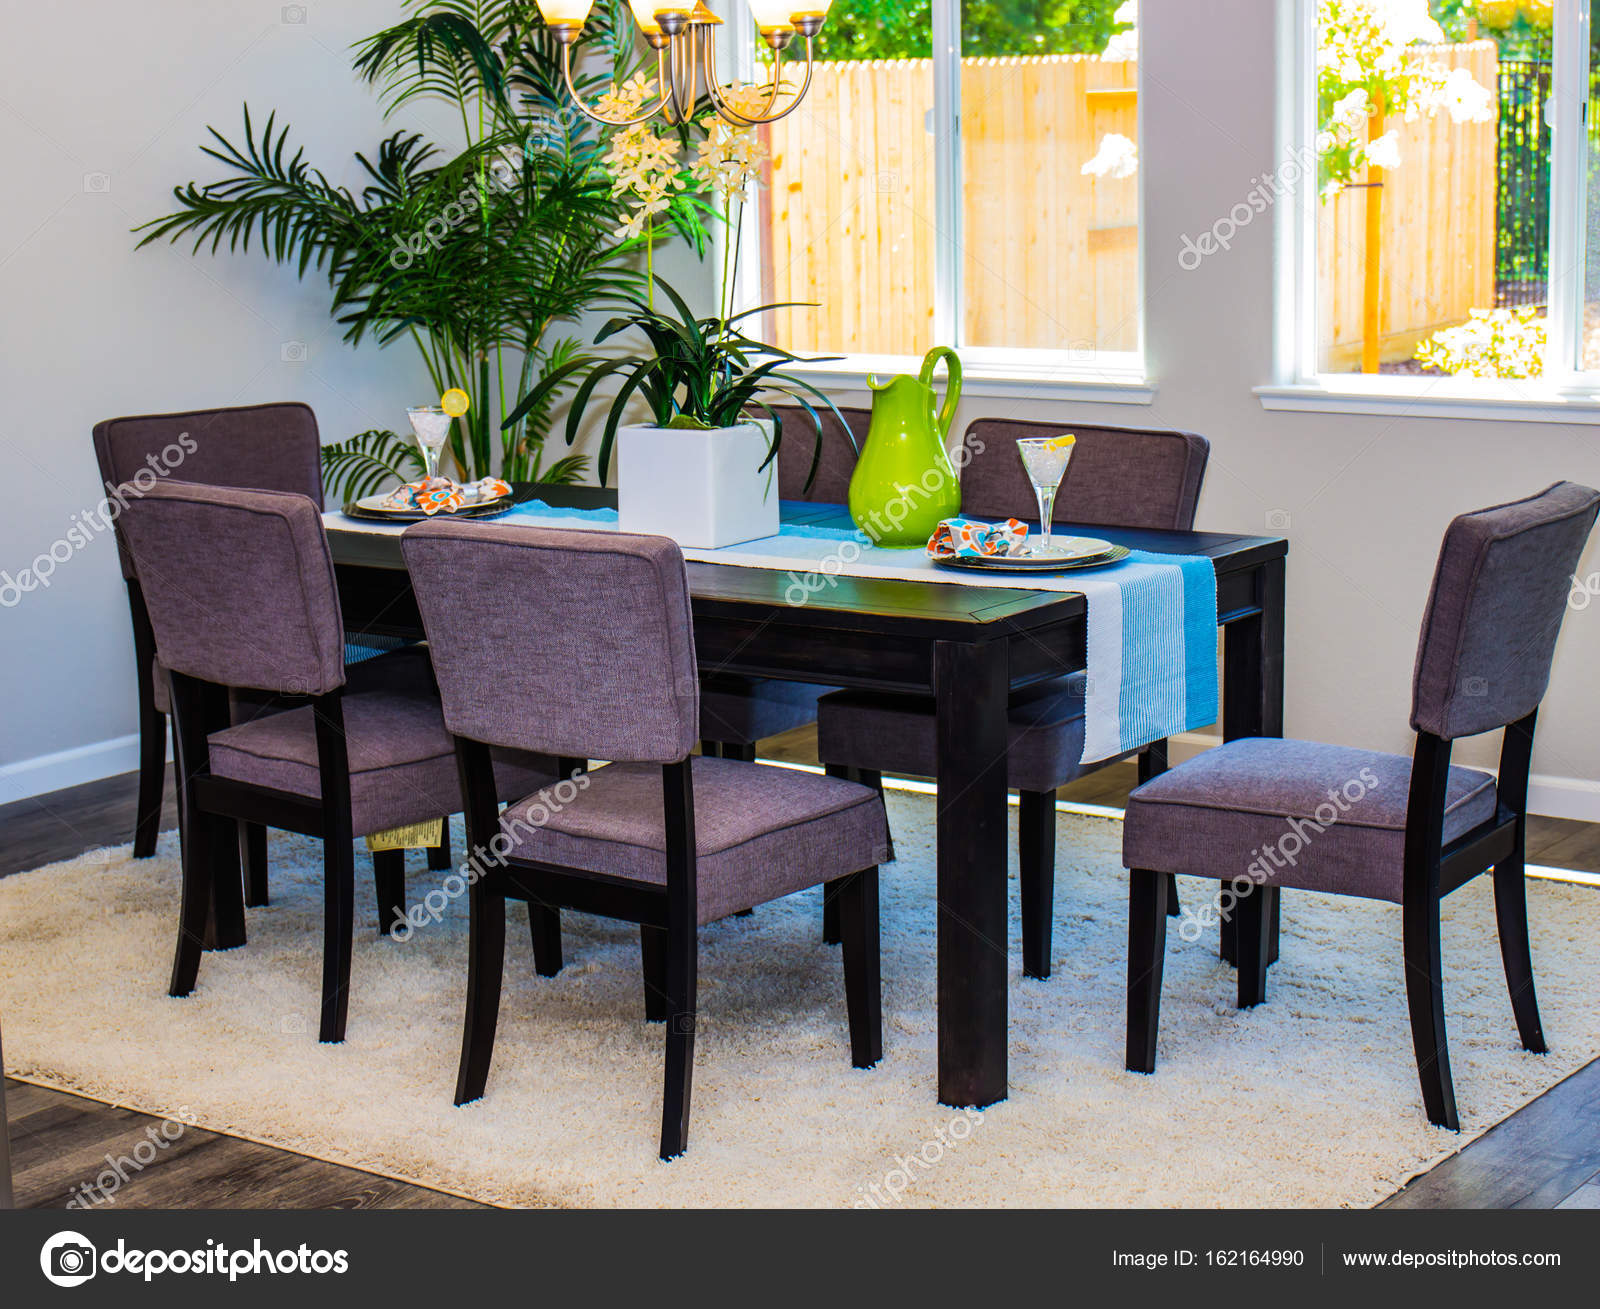 Modern Dining Room Table Chairs Stock Photo C Weezybob5 162164990